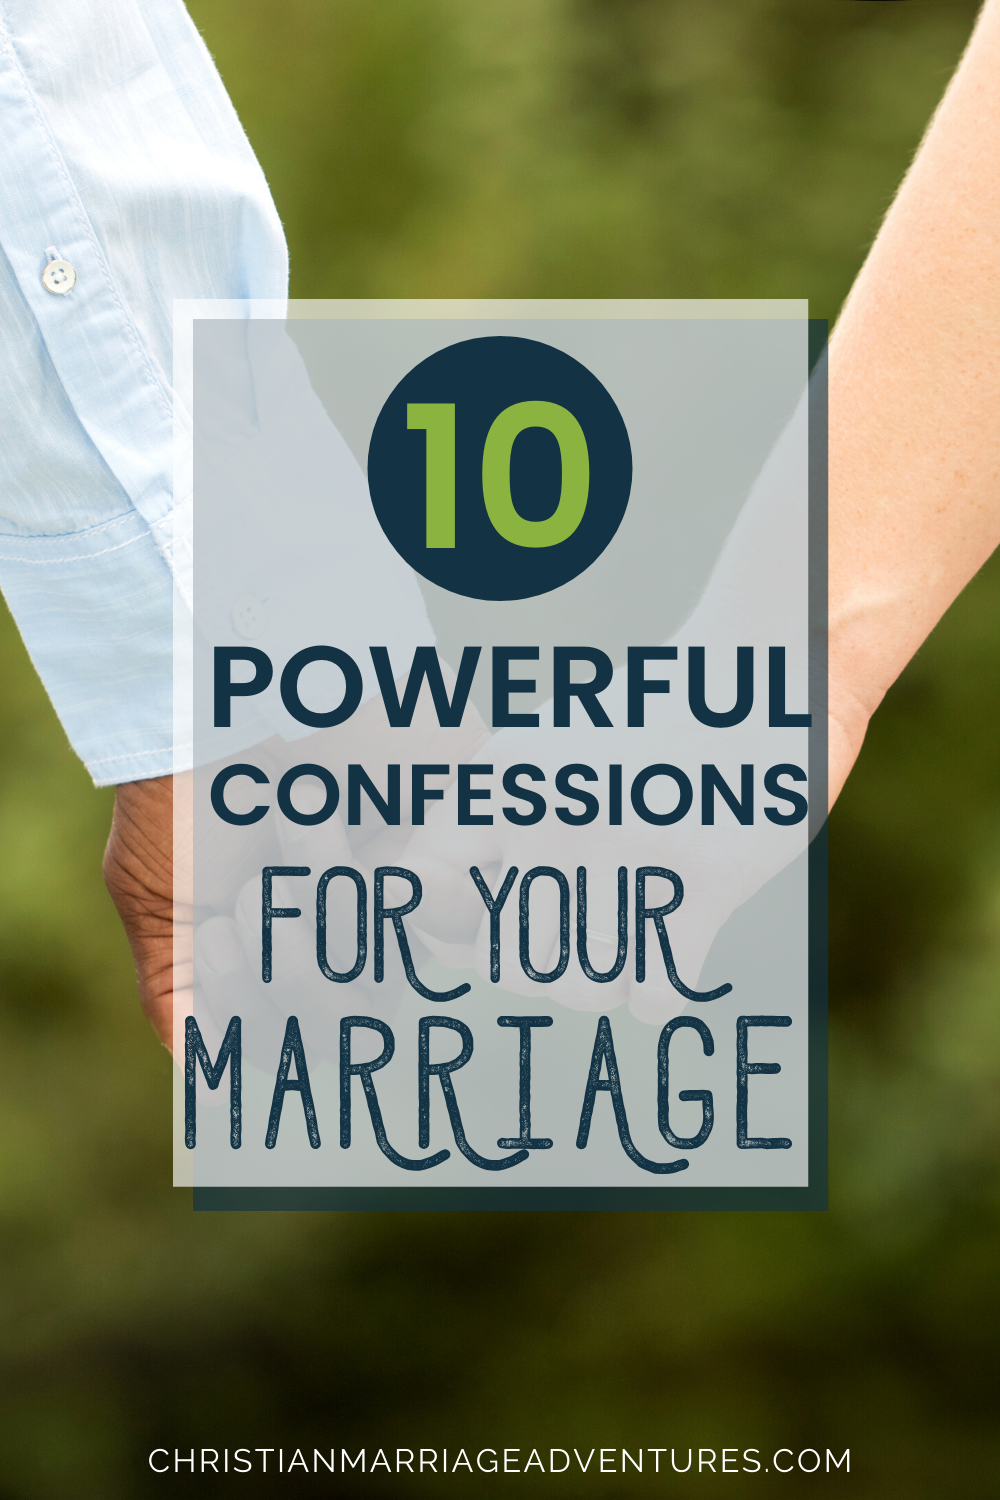 10 Powerful Confessions for Your Marriage